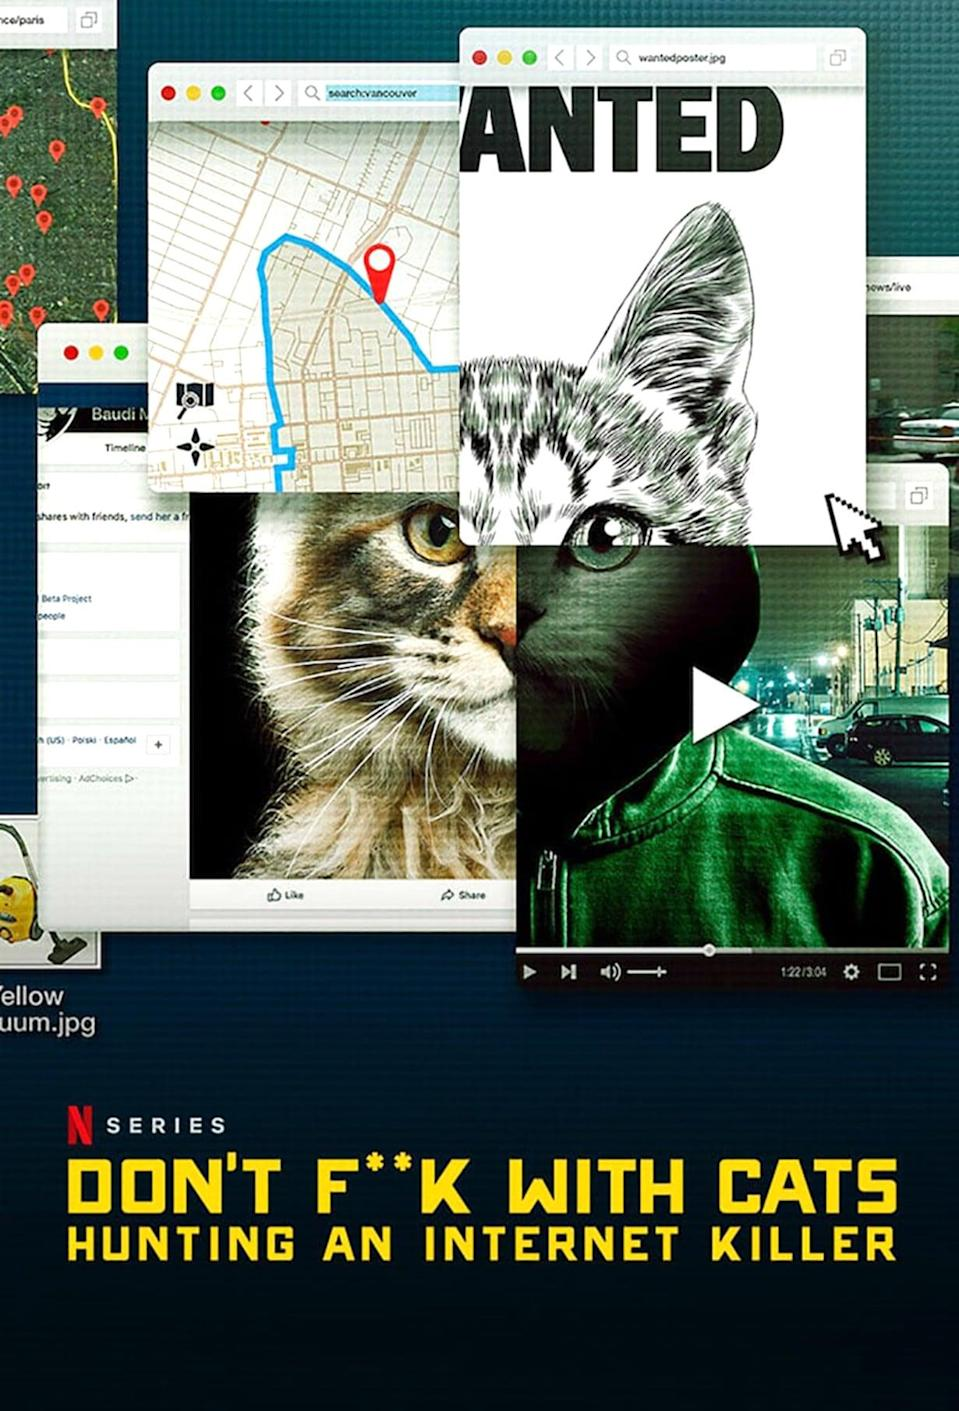 """<p>A twisted internet video inspires a group of online viewers to find the man behind it all, before he becomes a threat to society. </p> <p>Watch <a href=""""http://www.netflix.com/title/81031373"""" class=""""link rapid-noclick-resp"""" rel=""""nofollow noopener"""" target=""""_blank"""" data-ylk=""""slk:Don't F**k With Cats: Hunting an Internet Killer""""><strong>Don't F**k With Cats: Hunting an Internet Killer</strong></a> on Netflix now.</p>"""